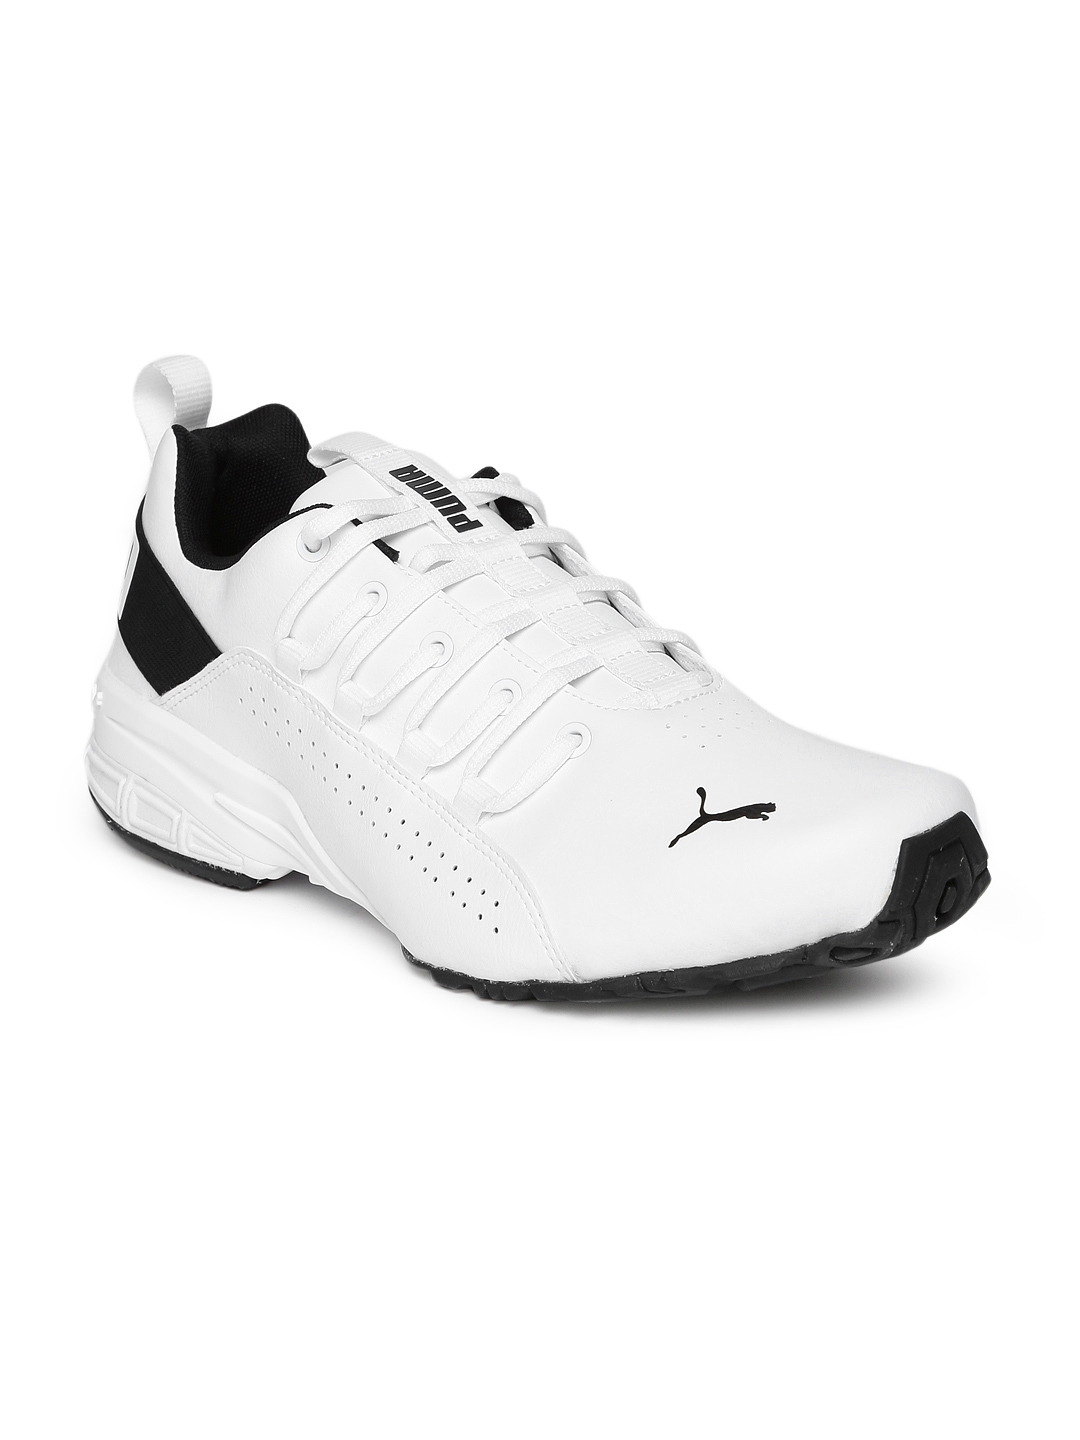 7c85d0633c6aac Buy Puma Men White Running Shoes - Sports Shoes for Men 8109859